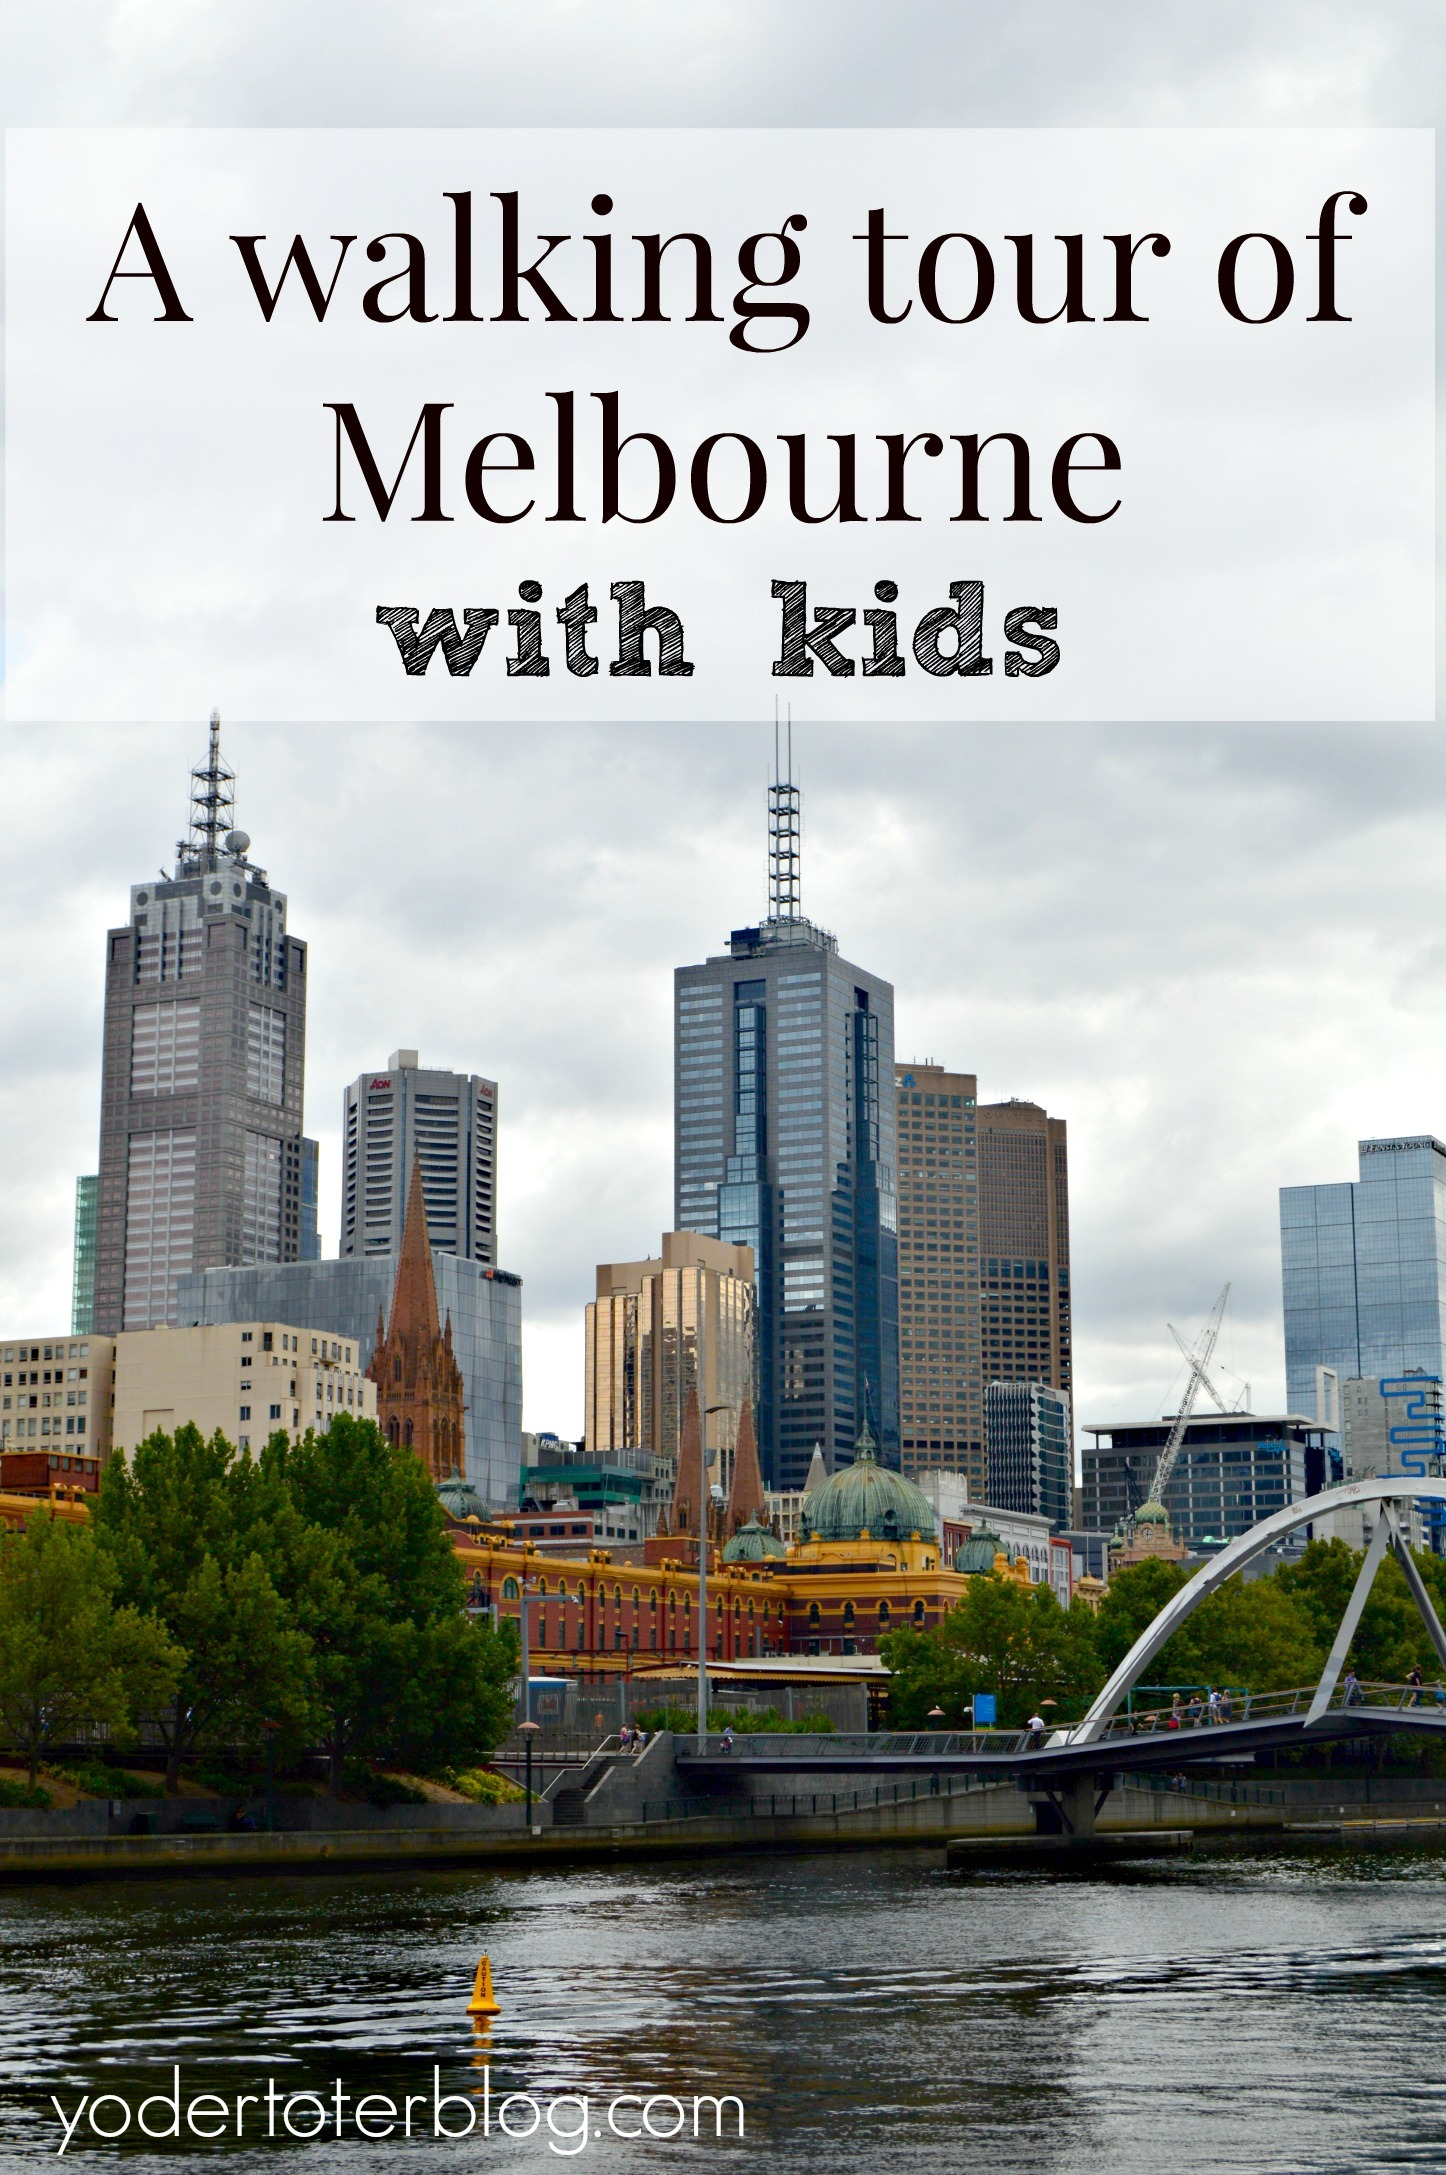 A walking tour of Melbourne with kids - Visiting Melbourne as a family